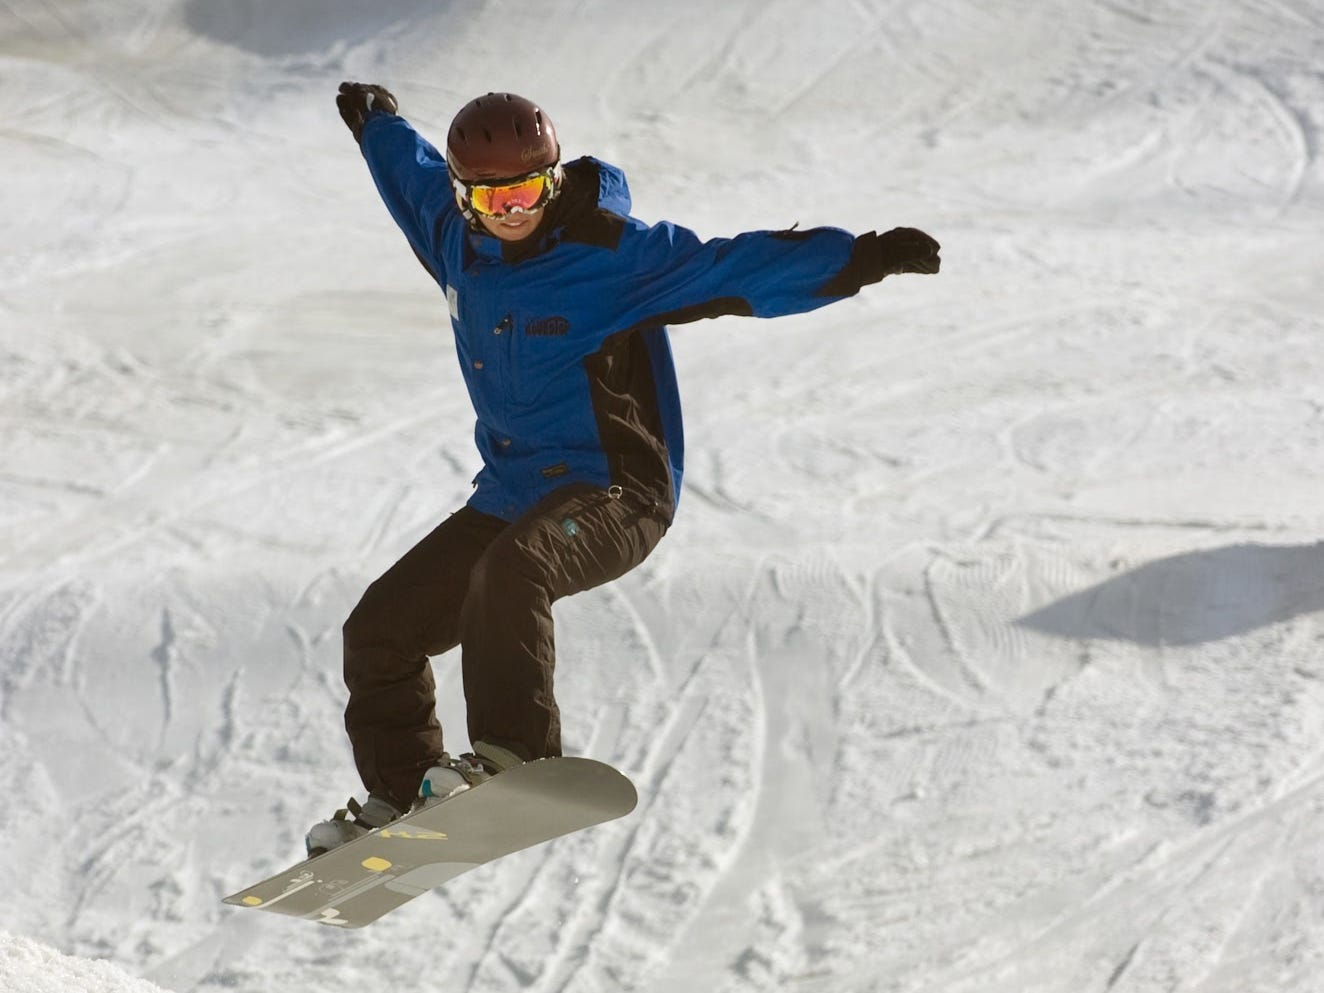 Instructor Erica Culbert, of Dillsburg, snow boards at Roundtop Mountain Resort Tuesday March 8, 2011.